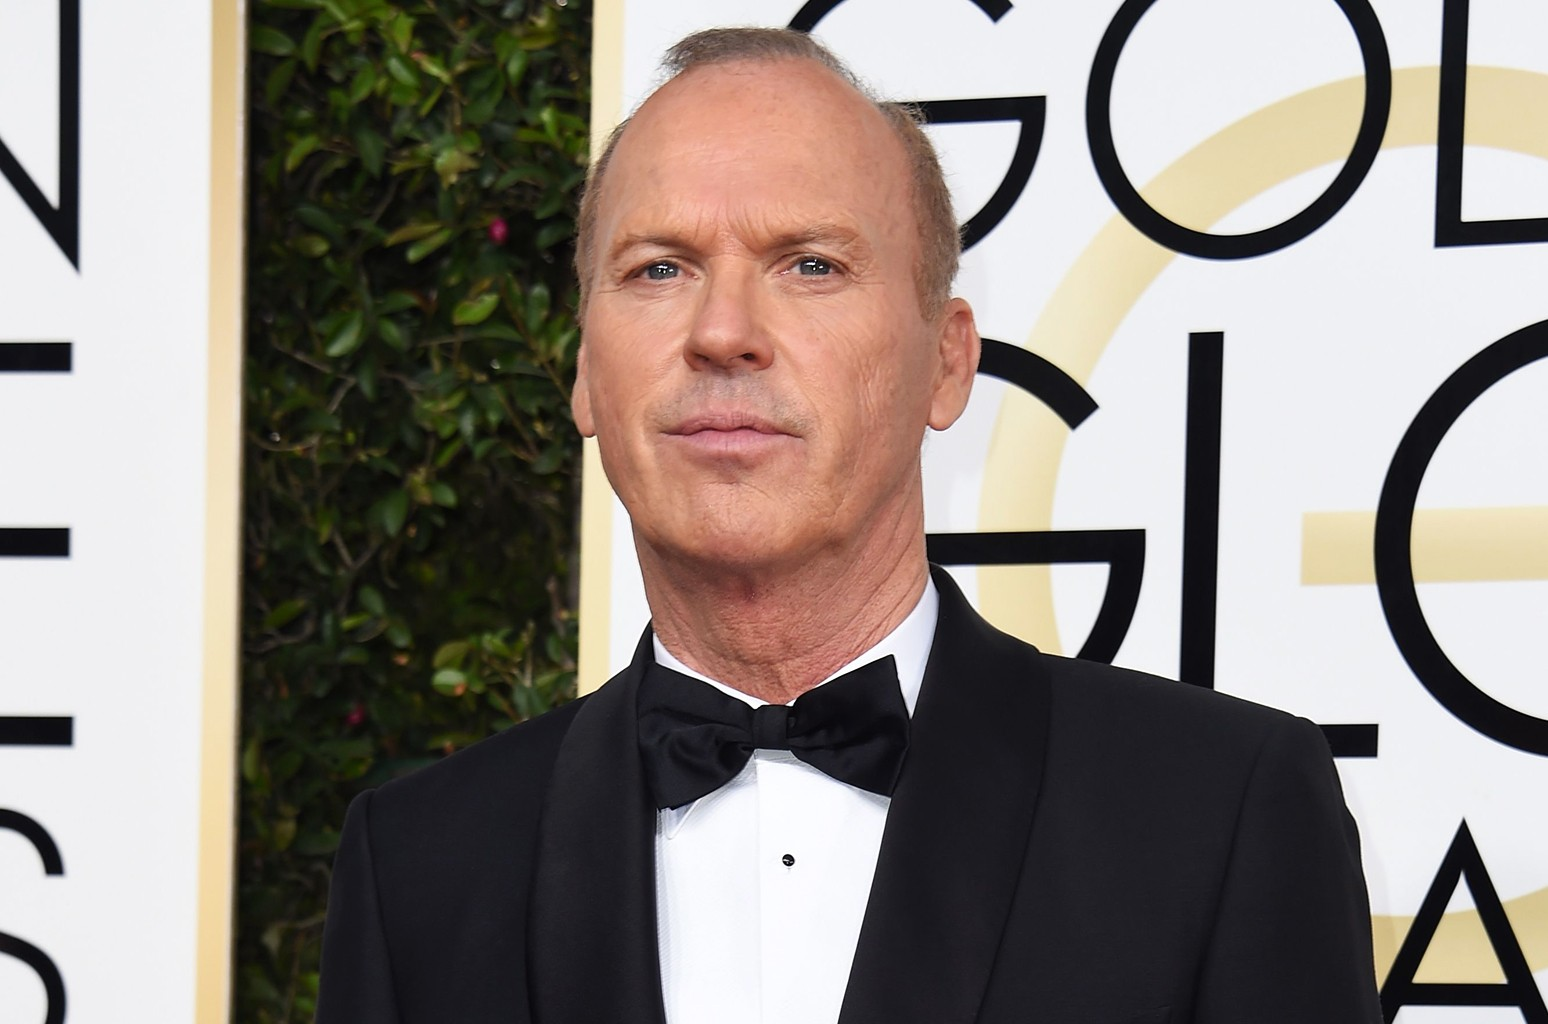 Michael Keaton arrives at the 74th annual Golden Globe Awards on Jan. 8, 2017, at the Beverly Hilton Hotel in Beverly Hills, Calif.